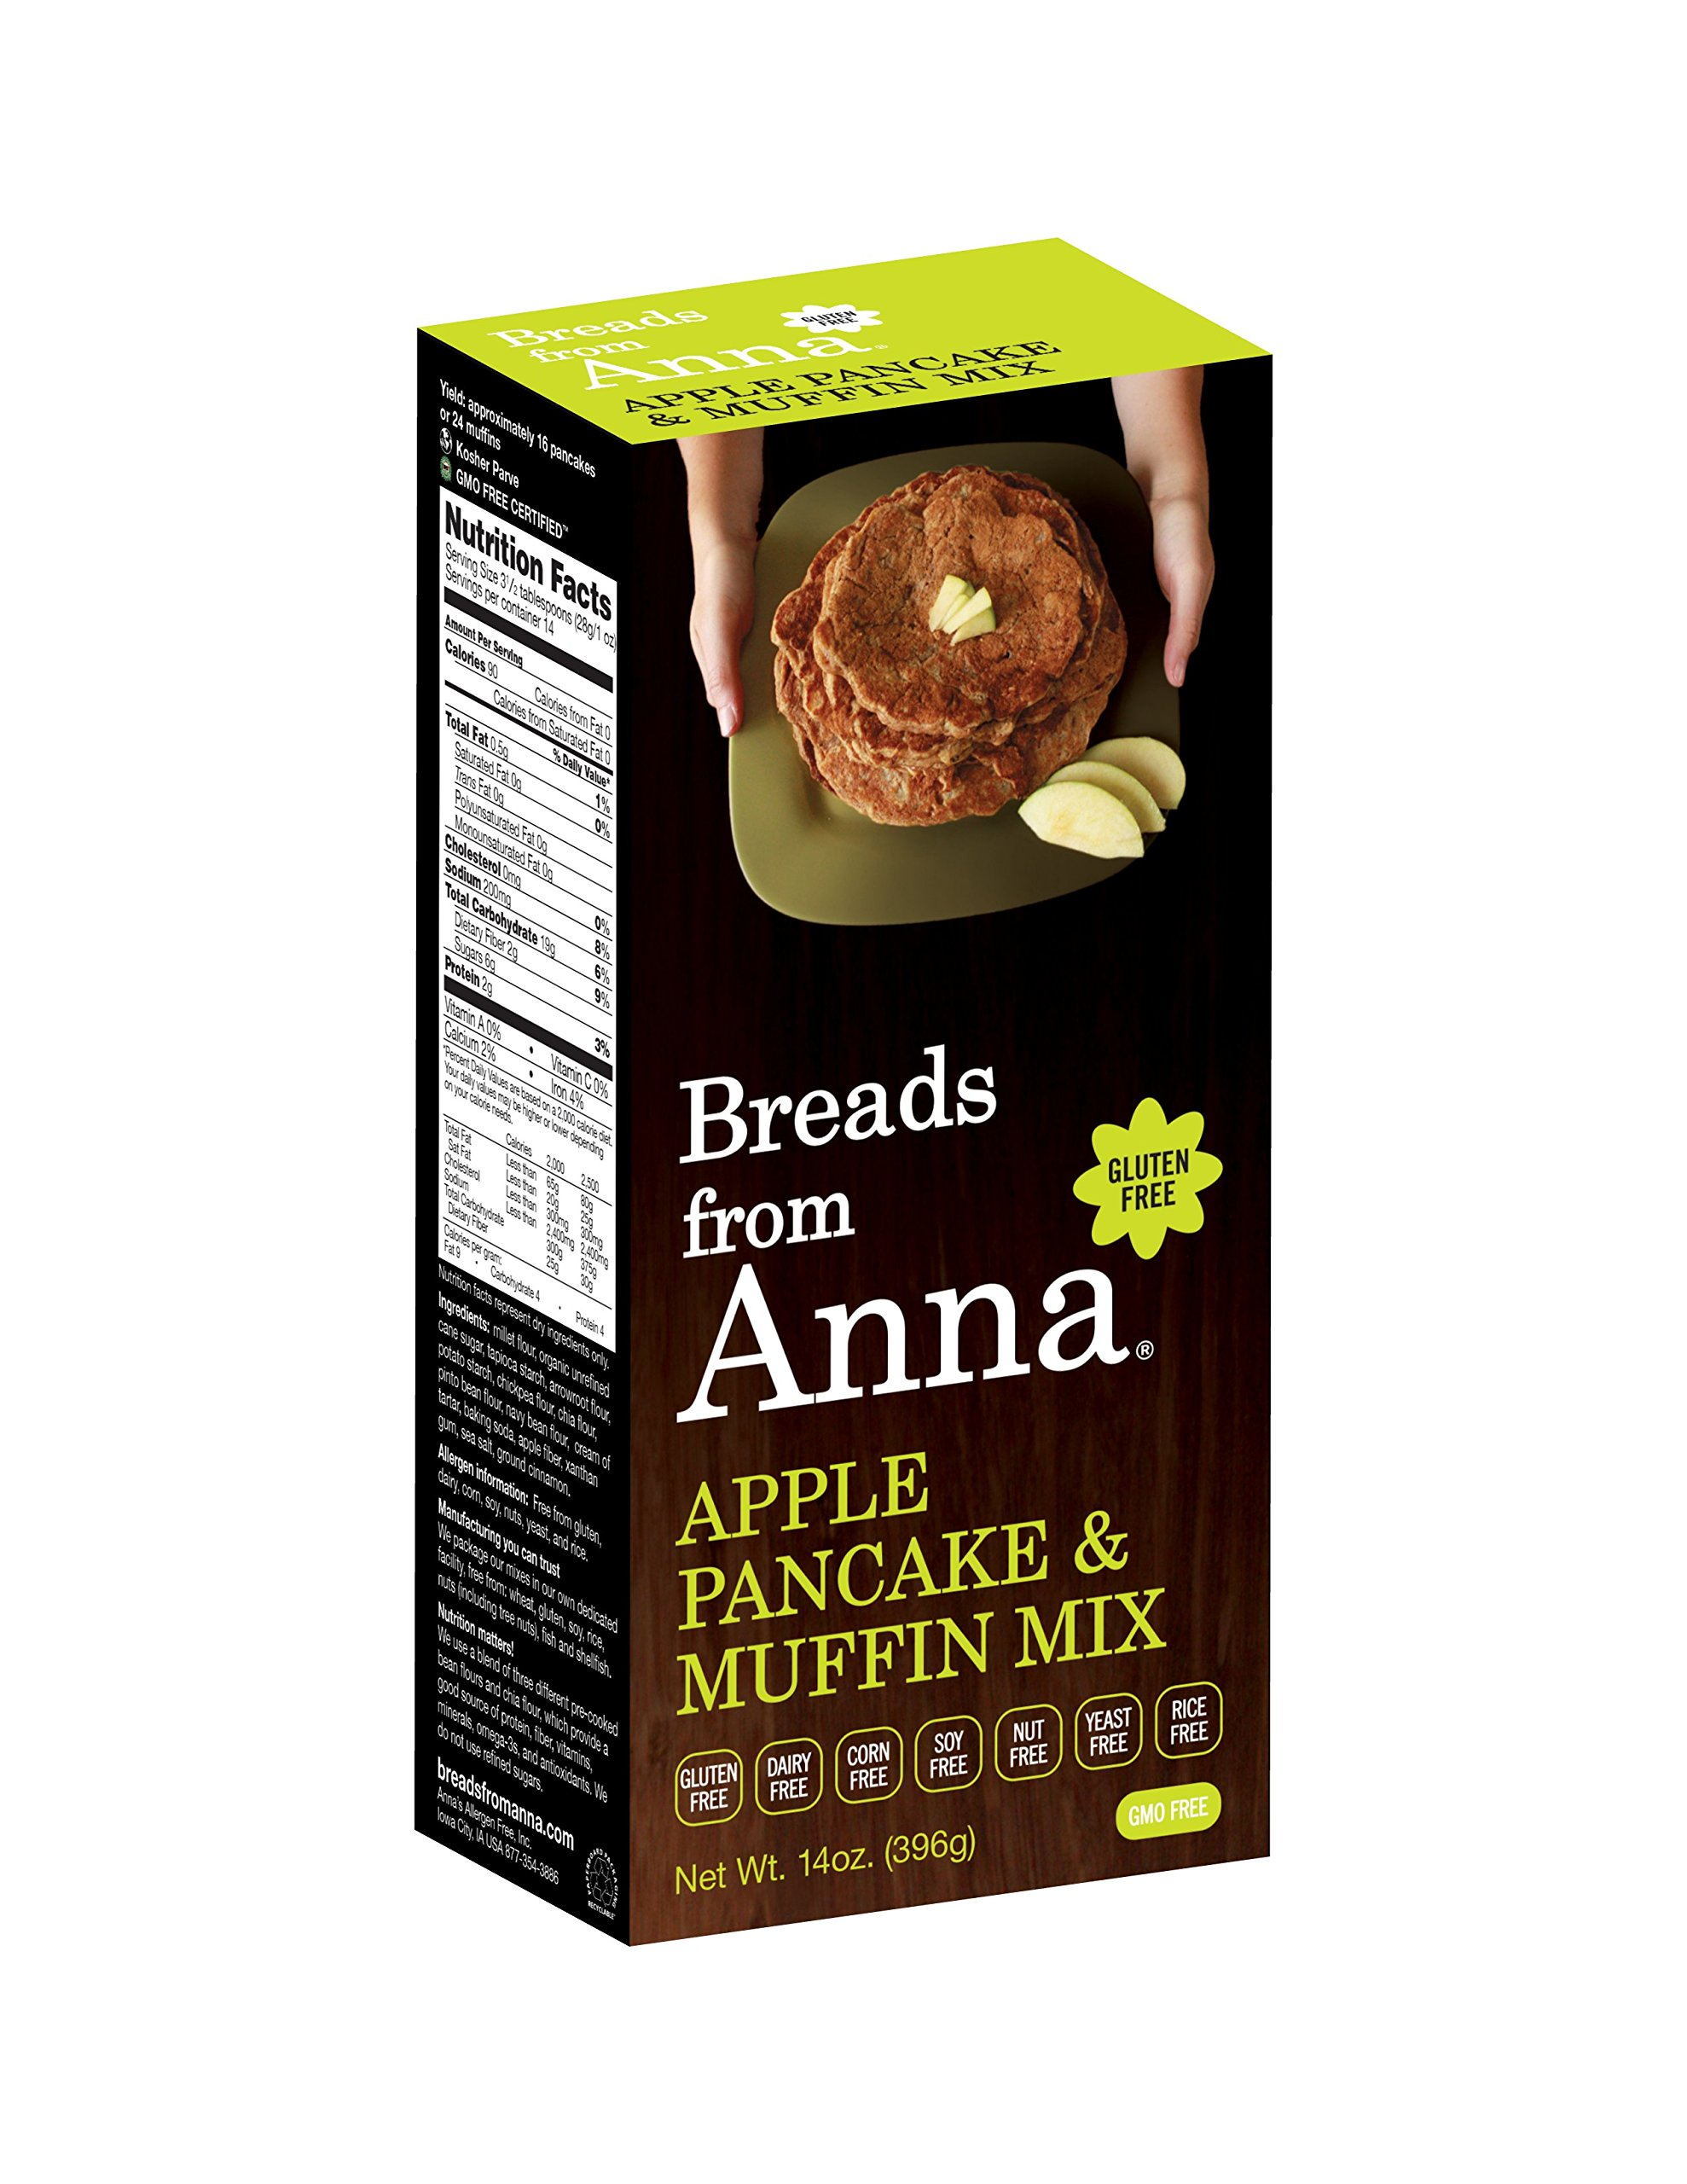 Breads from Anna Bulk 25lbs-Breads from Anna Apple Pancake and Muffin Mix Gluten-free, Dairy Free, Corn Free, Soy Free, Rice Free, Nut Free, Yeast Free